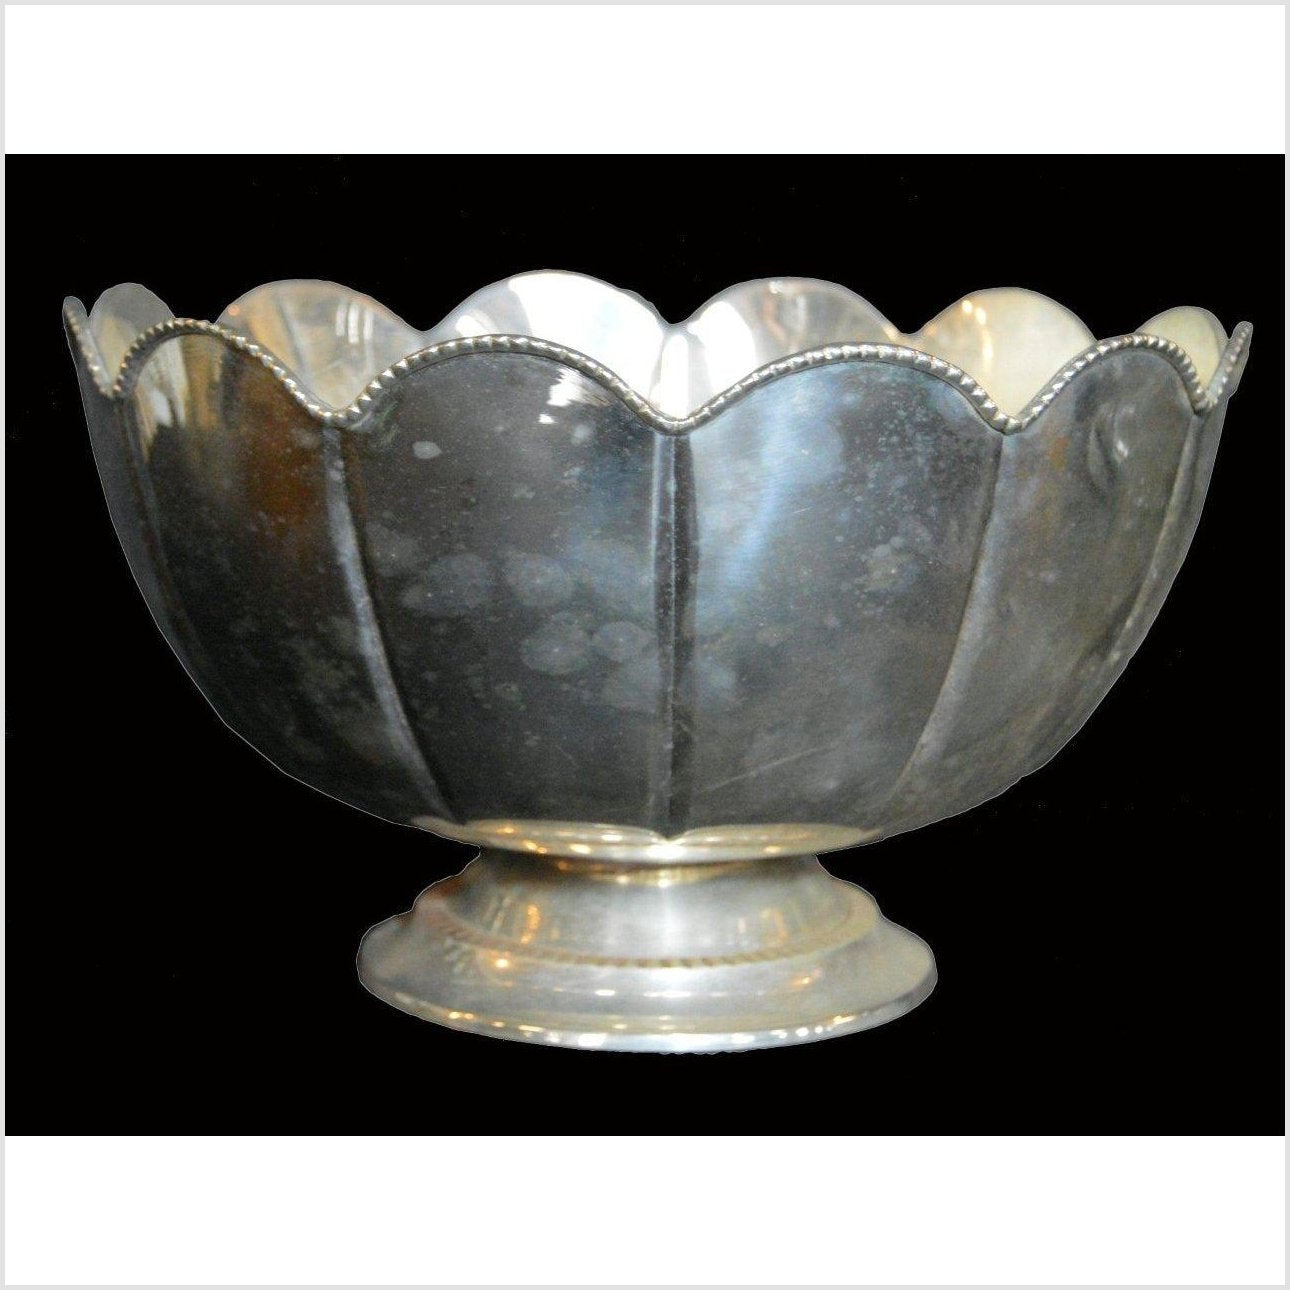 HAND TOOLED SILVER PLATED BOWL